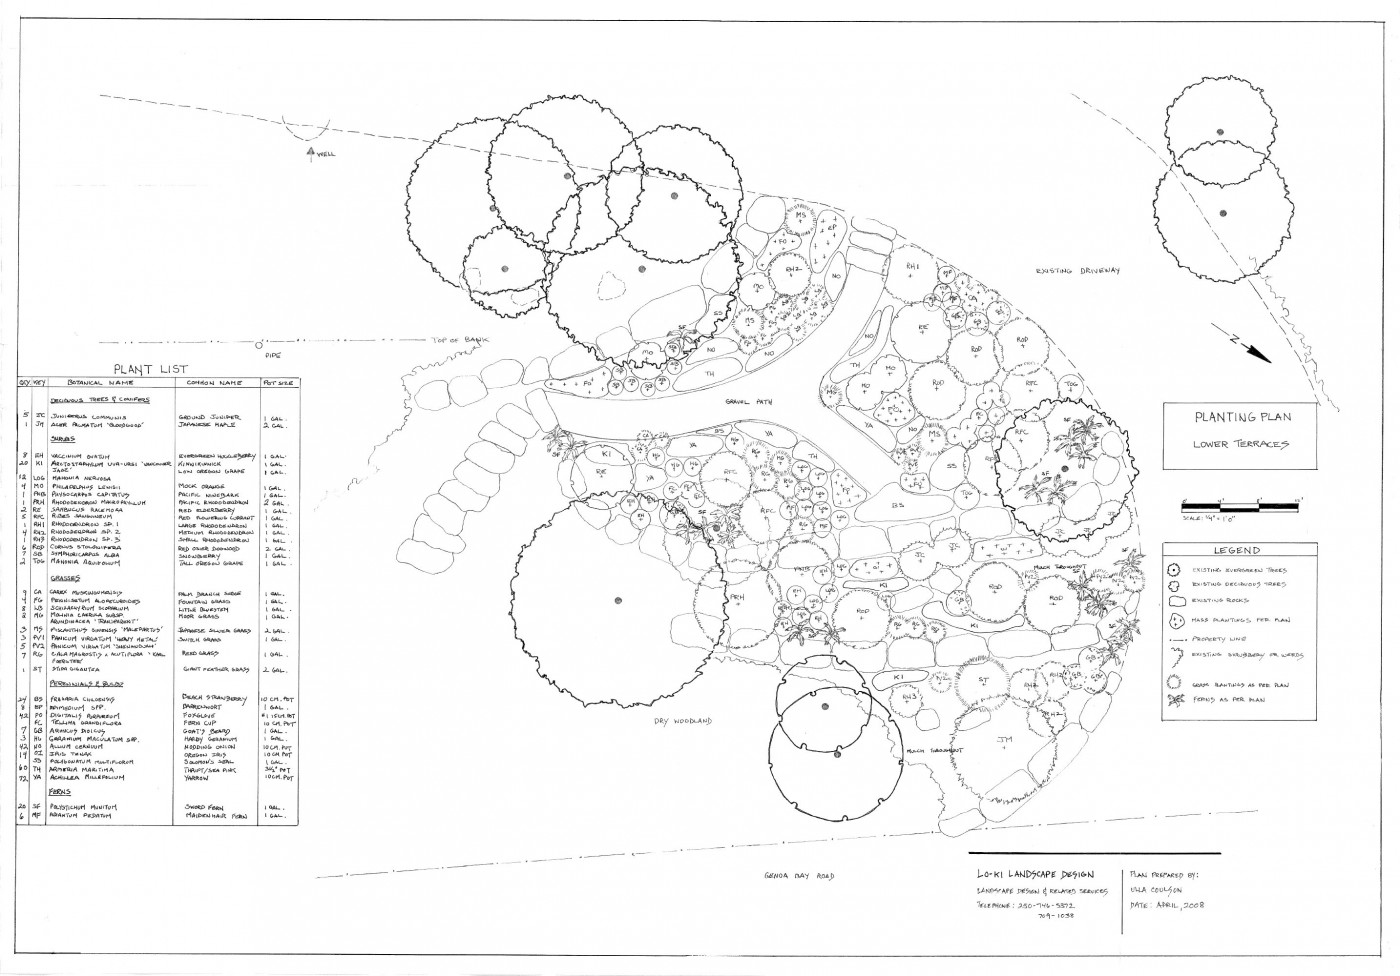 cowichan valley landscape design